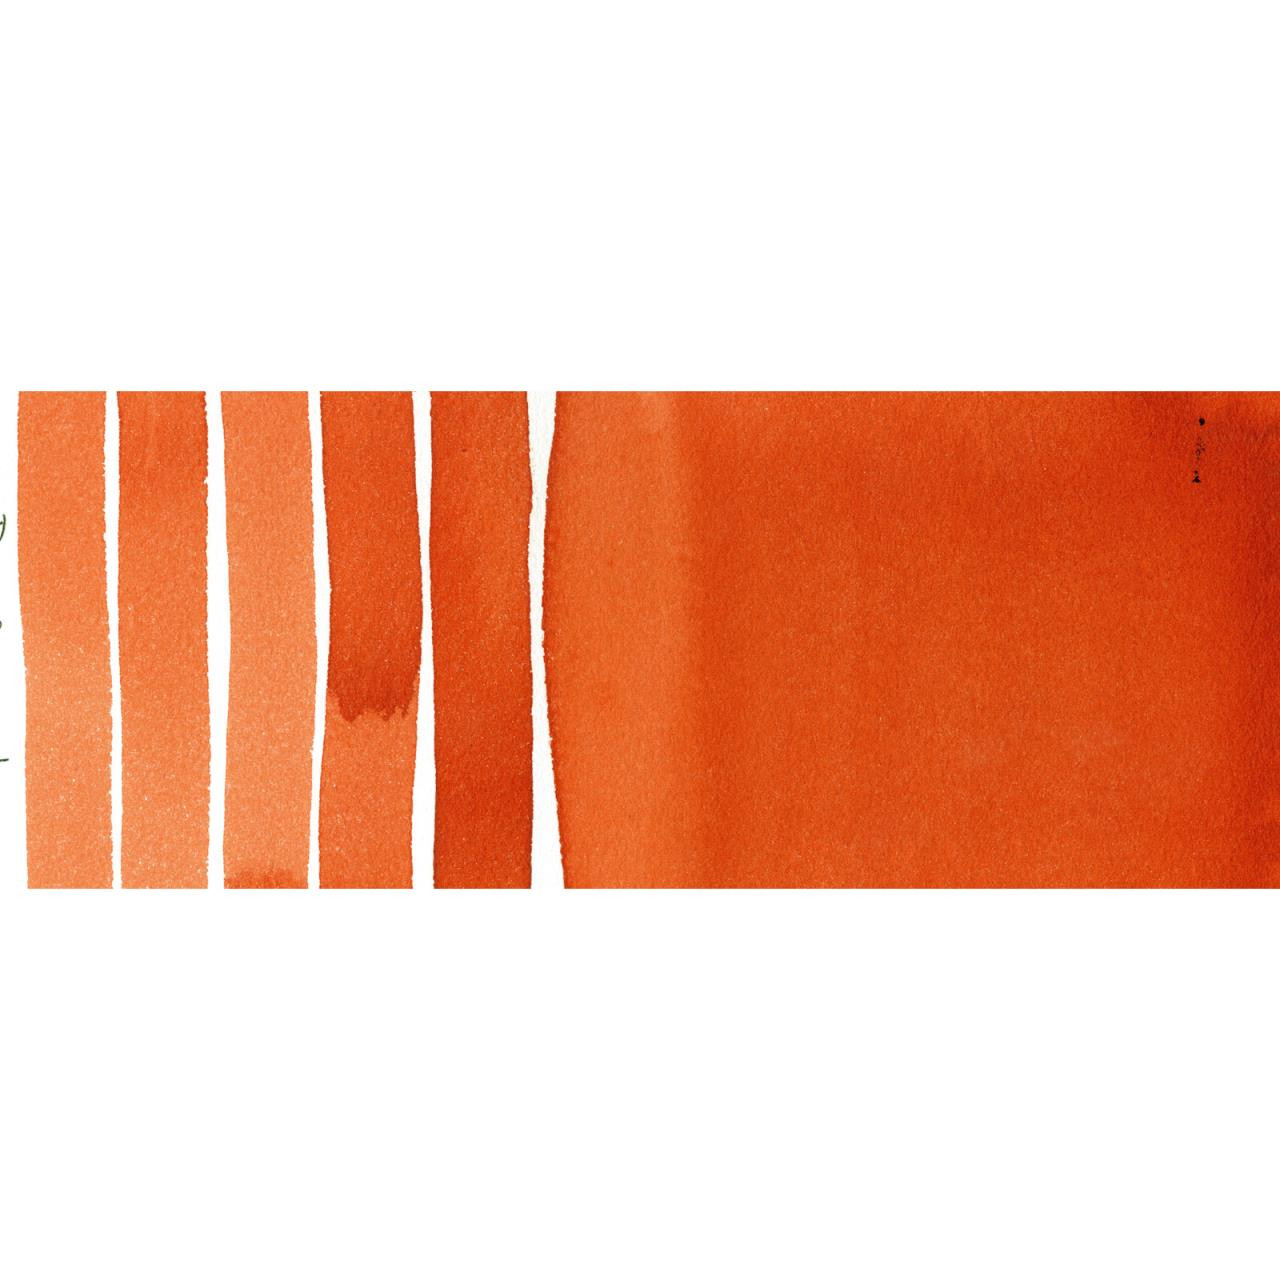 Transparent Pyrrol Orange, DANIEL SMITH Extra Fine Watercolors 5ml Tubes -